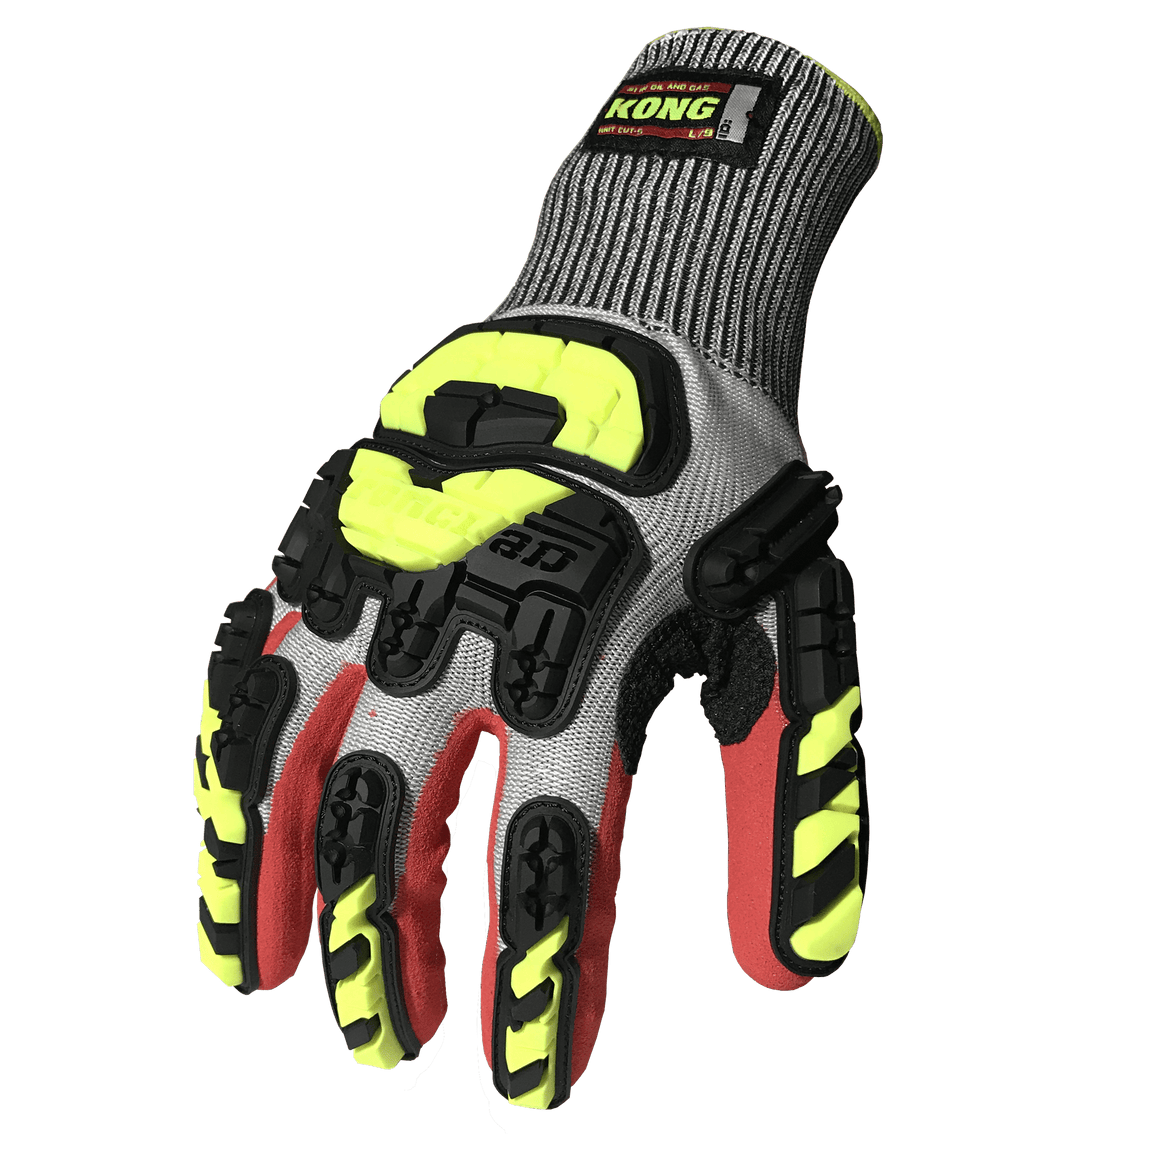 IRONCLAD KKCA5 - KONG KNIT CUT A5 IMPACT GLOVE